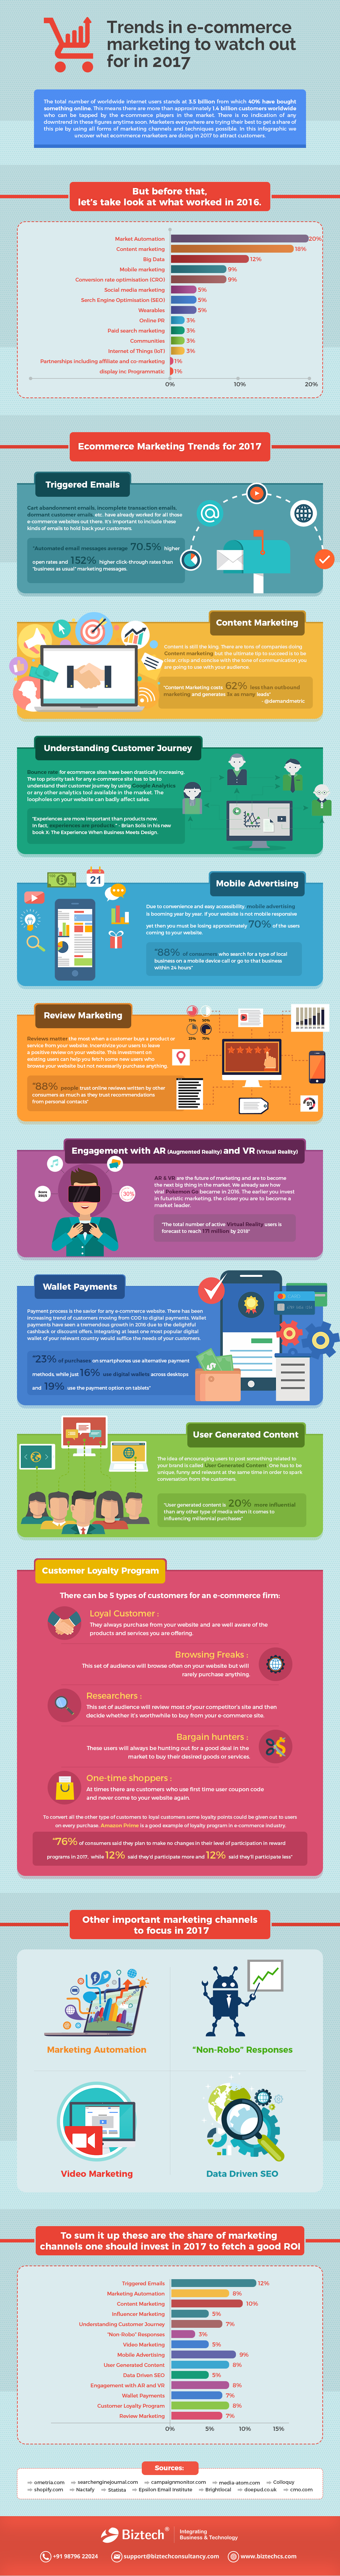 Trends-in-e-commerce-marketing-to-watch-out-for-in-2017_3-(1).png